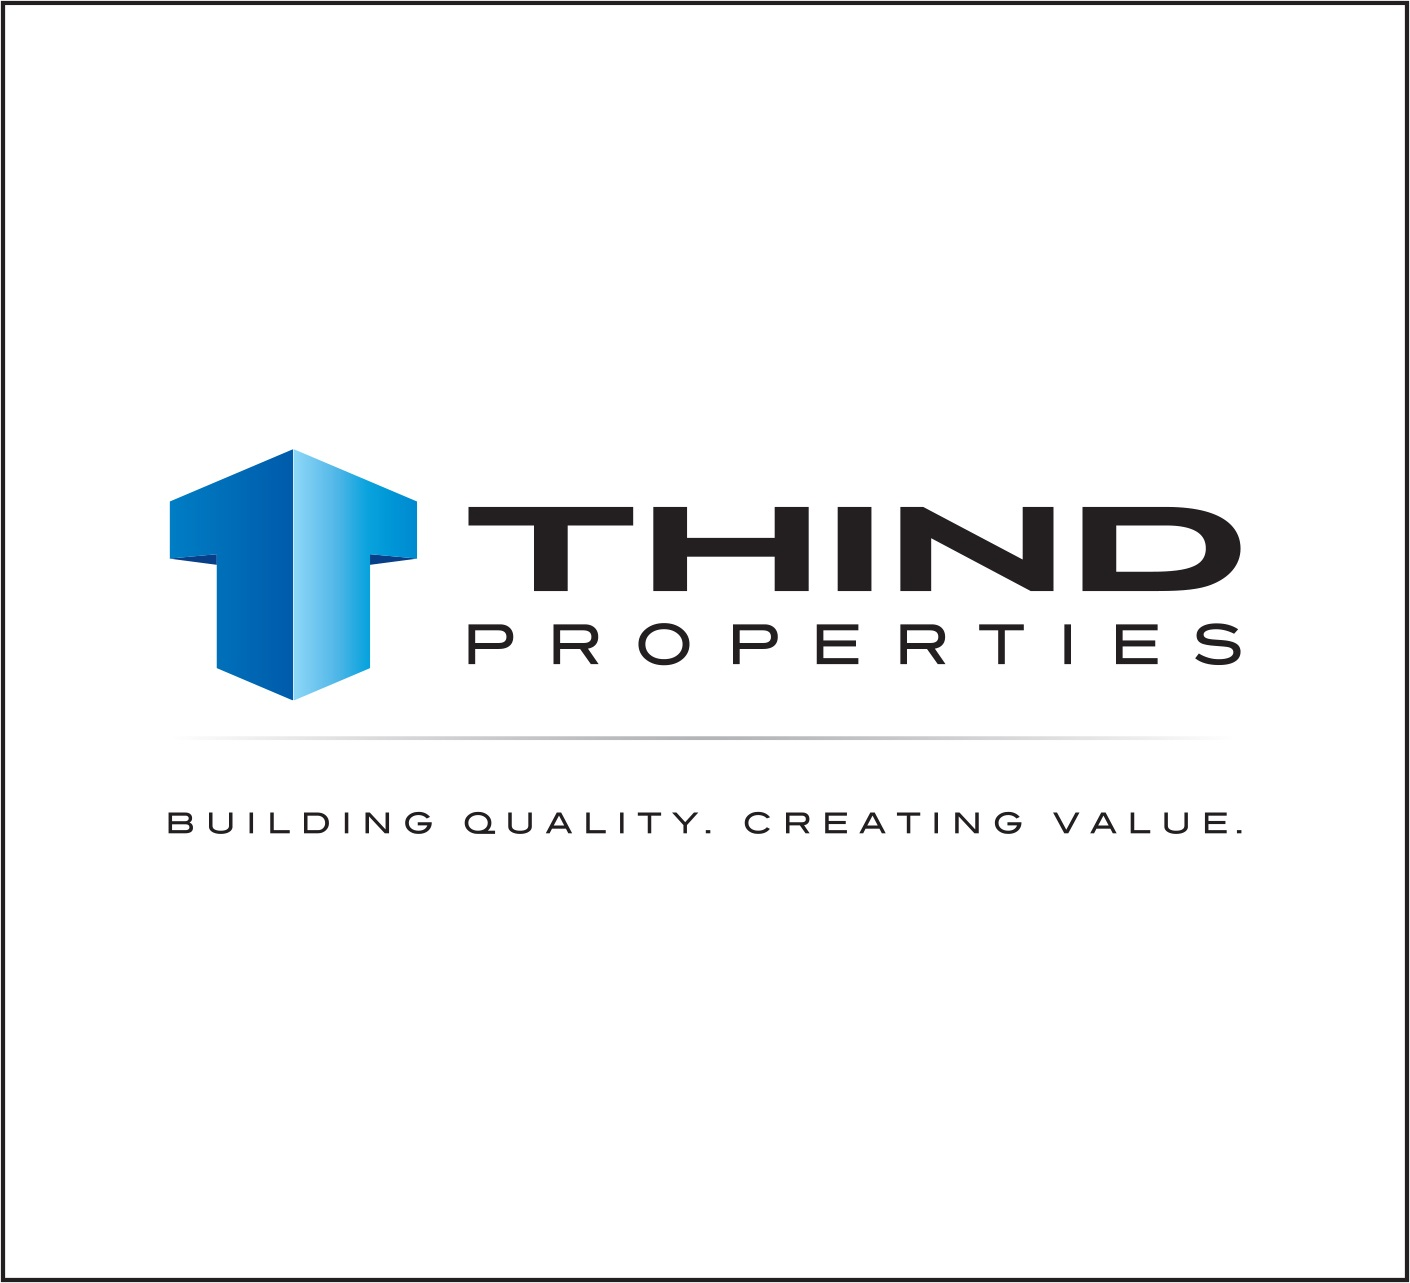 Copy_of_THIND_Properties_Logo_2013-02-26_(CS5)_(2).jpg